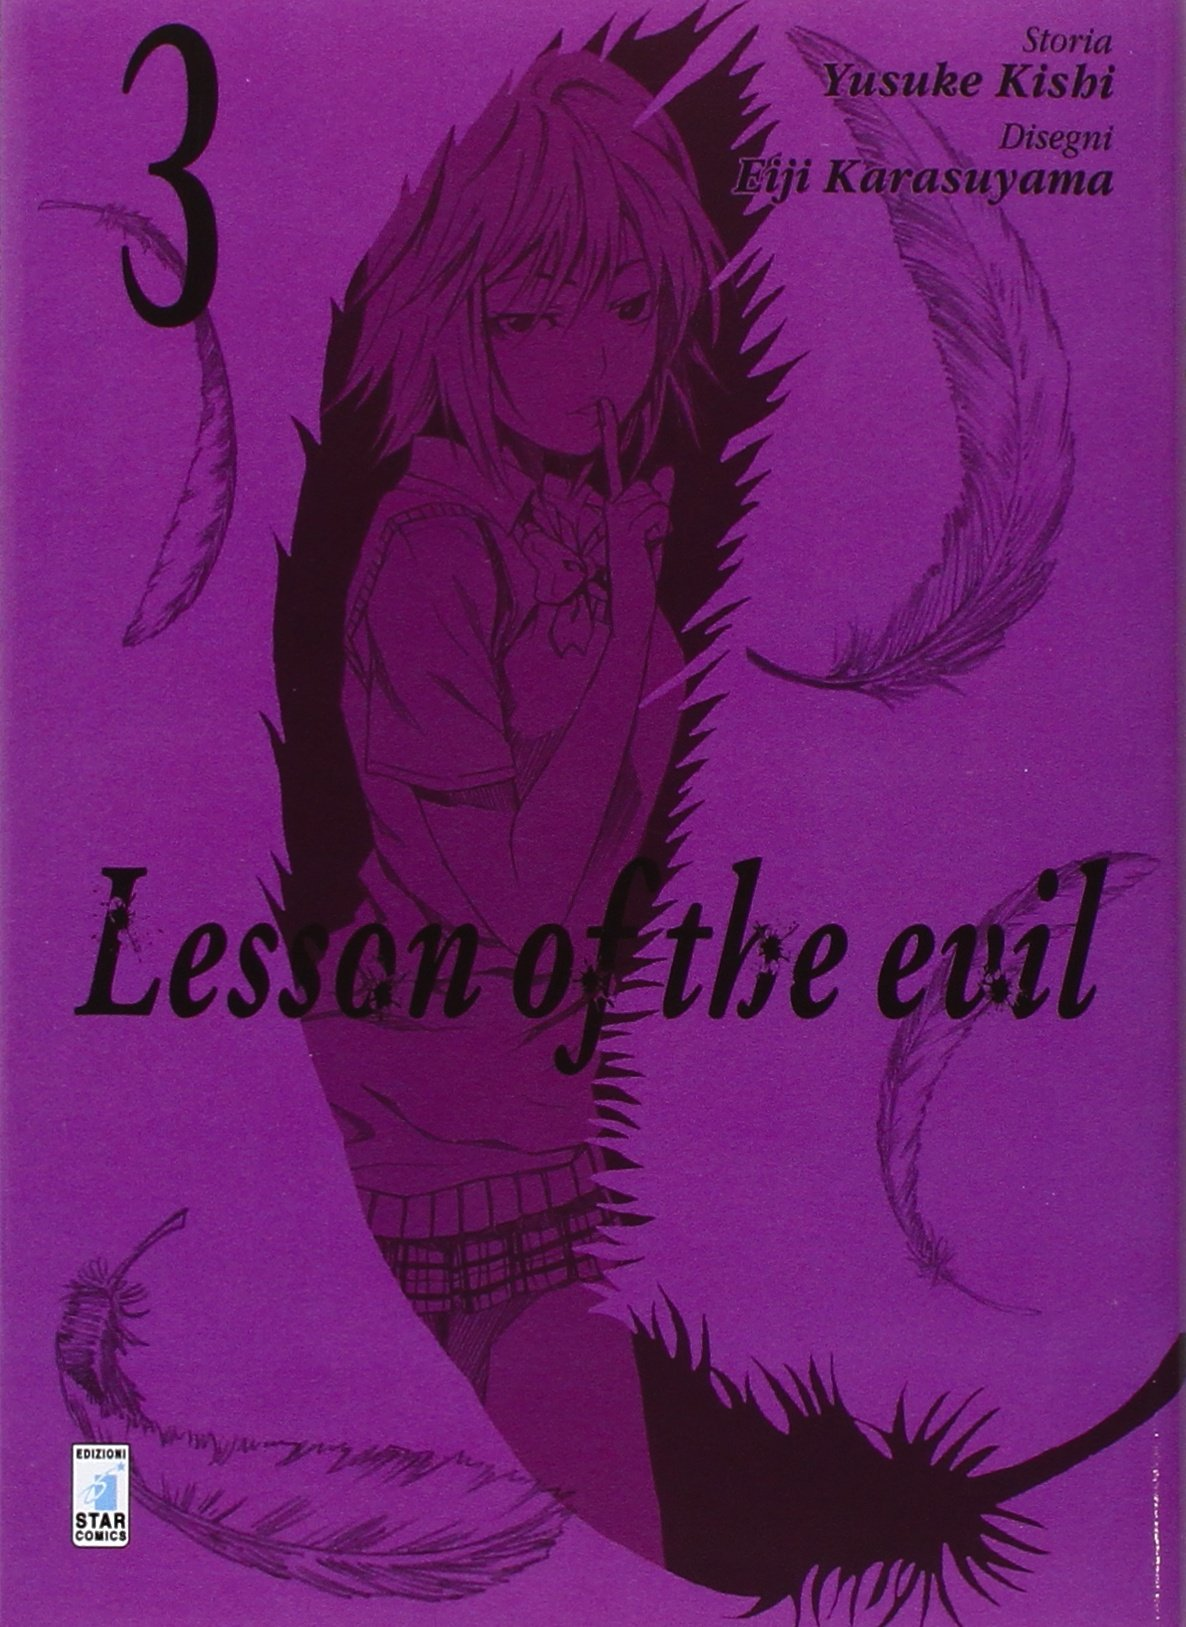 Lesson of the evil vol. 3